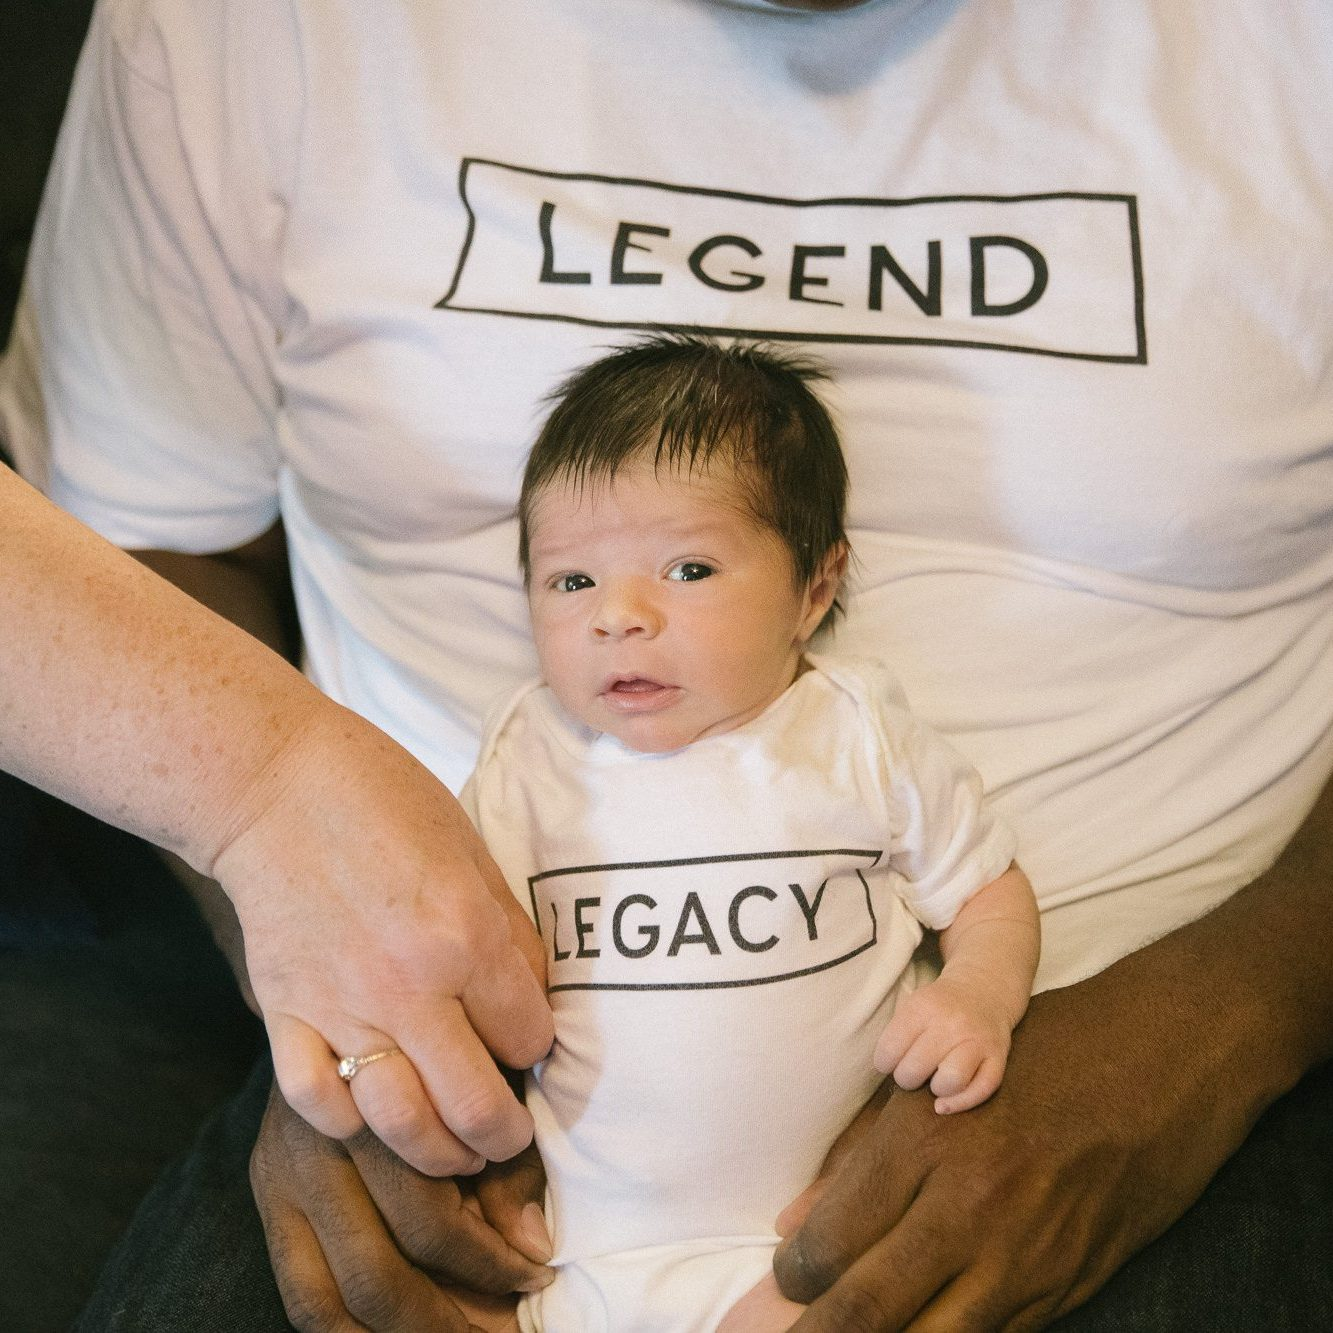 Grandma's hand is straightening out newborn's LEGACY onesie while being held by Dad in LEGEND t-shirt